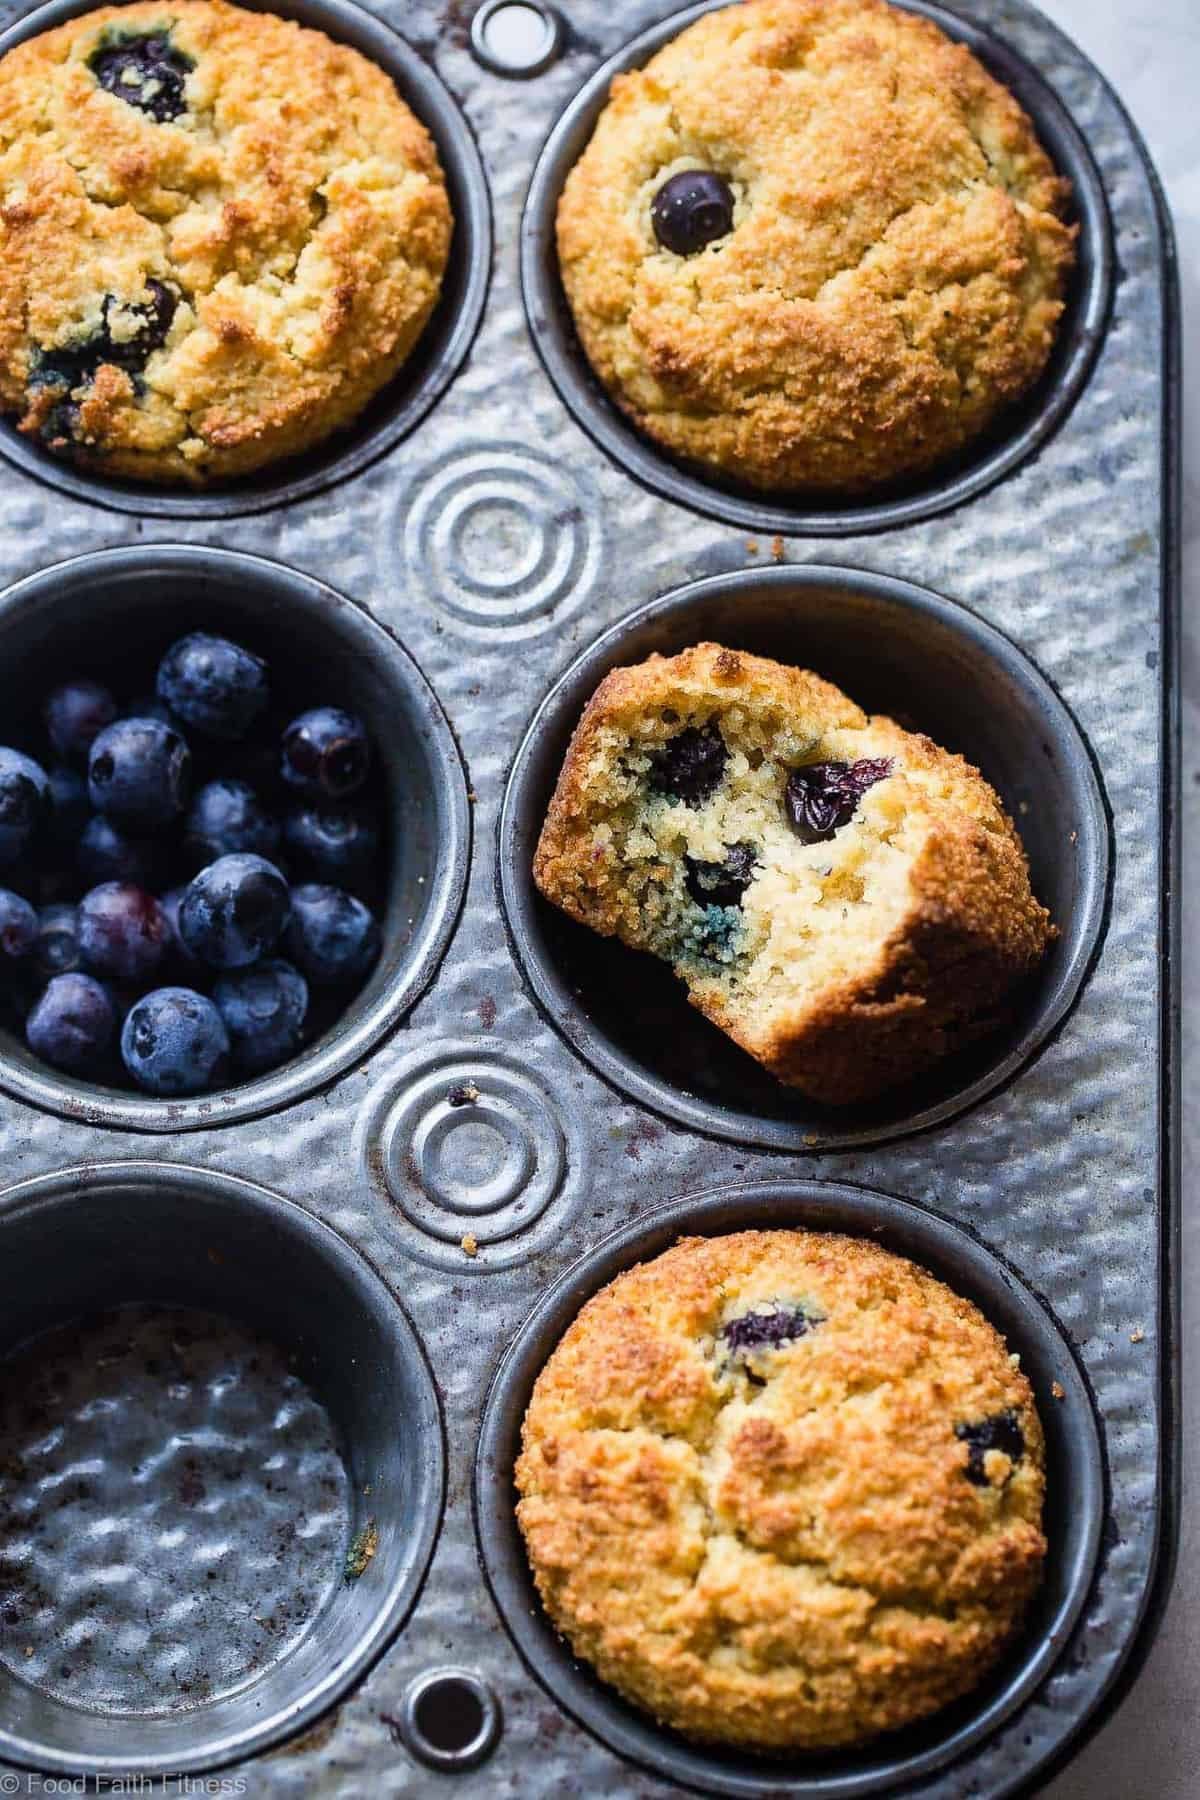 Keto Muffins arranged in a muffin tin with blueberries